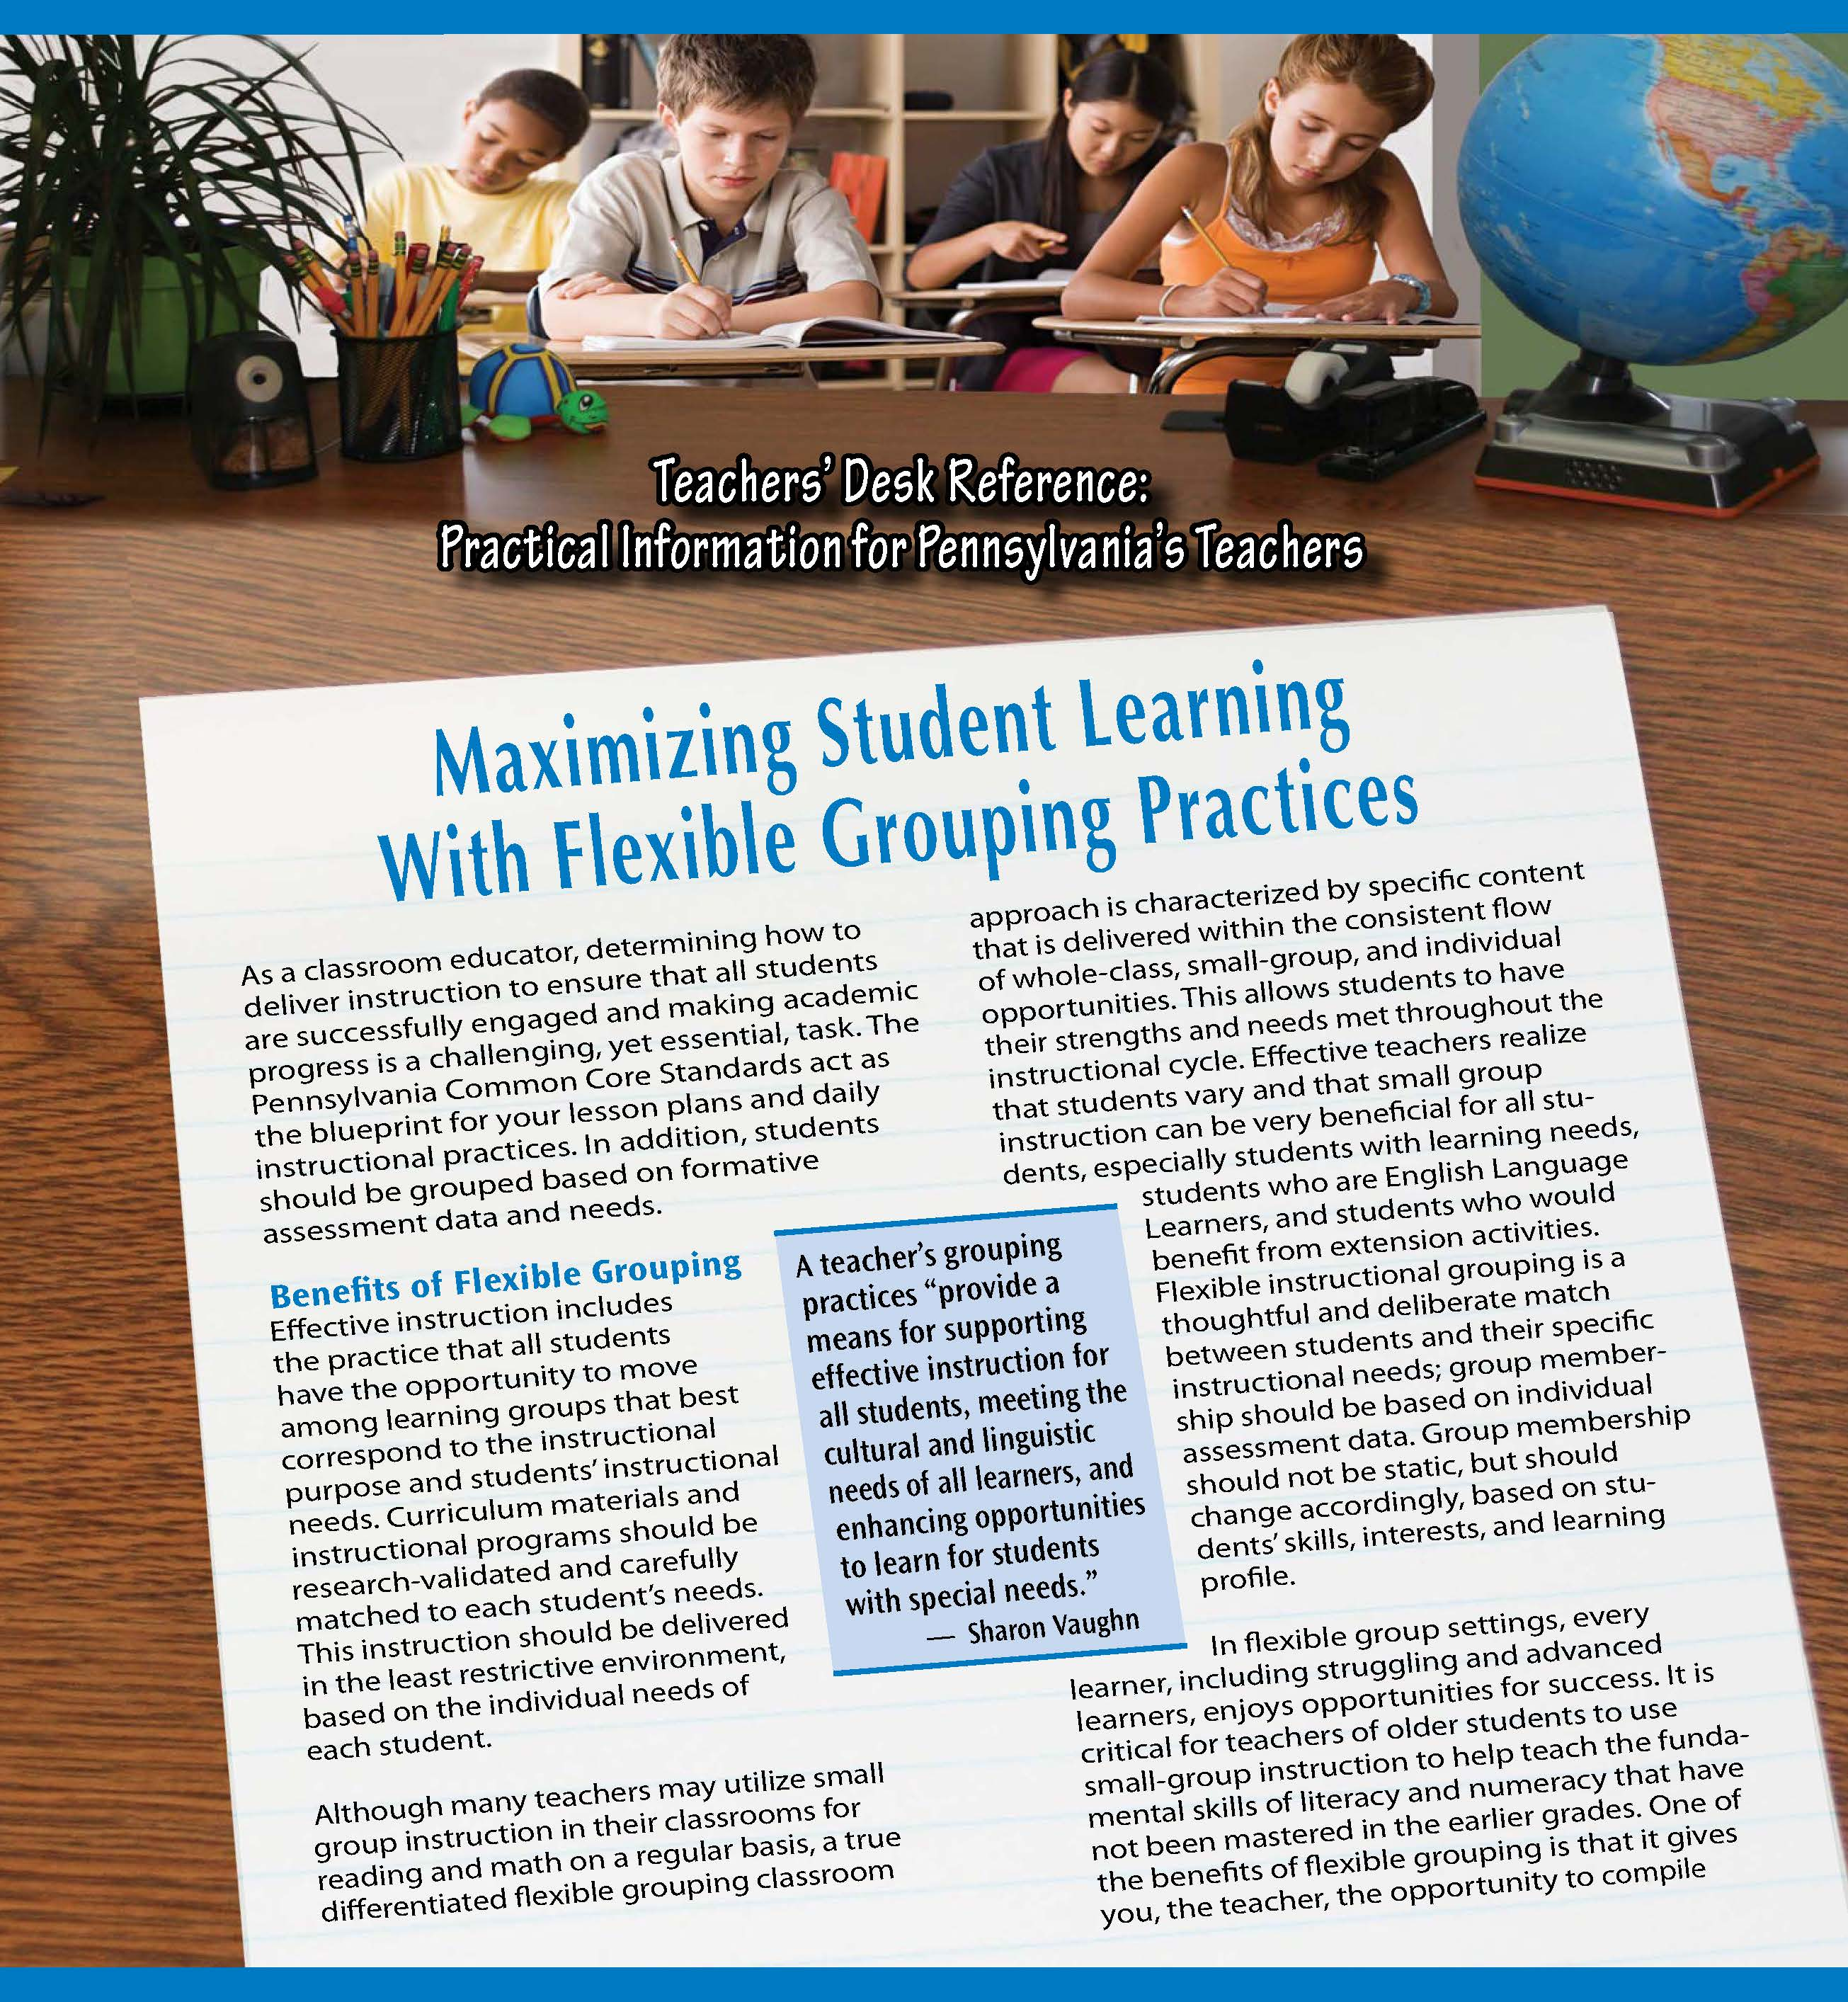 Teachers' Desk Reference: Maximizing Student Learning With Flexible Grouping Practices